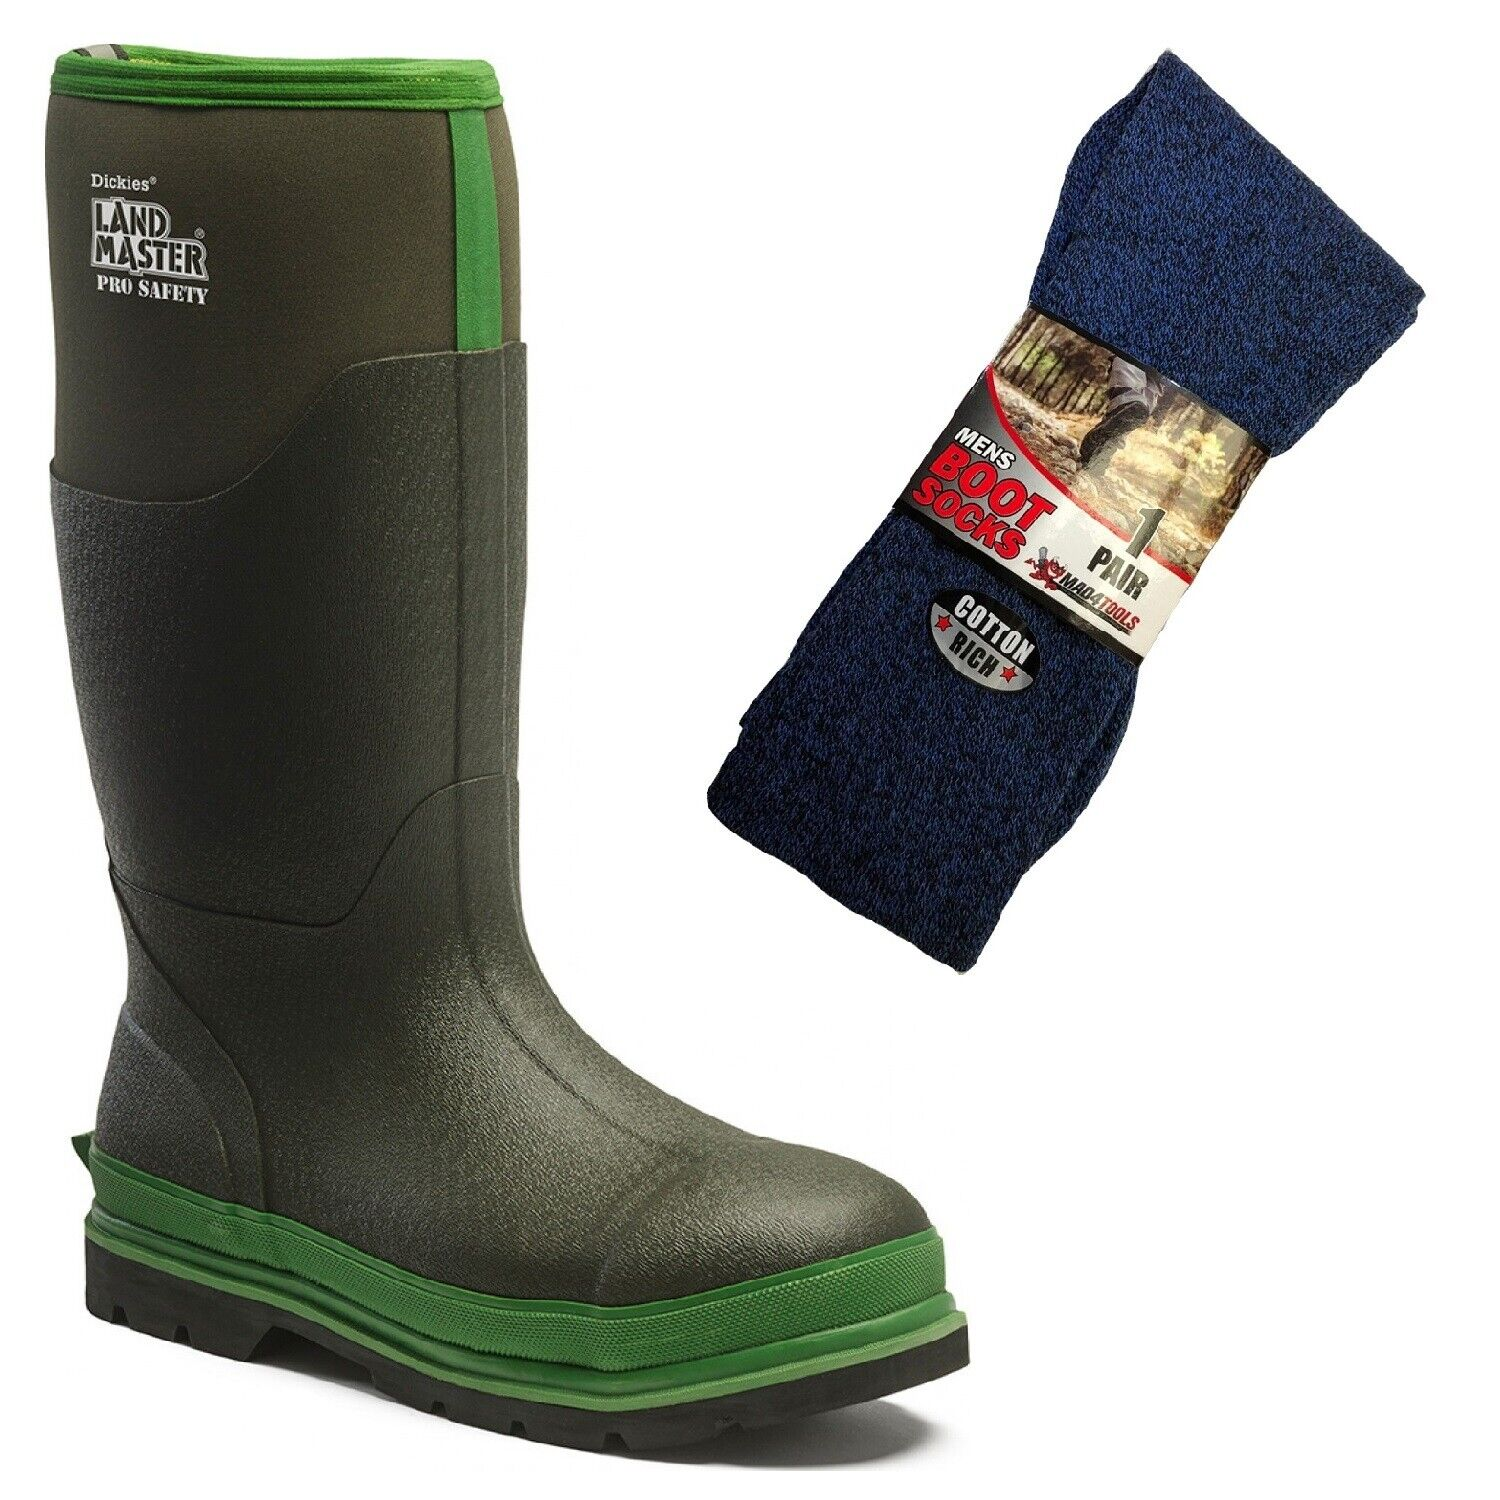 Dickies Landmaster Pro Safety Wellington Boots Green & 1 Pair of Boot Socks